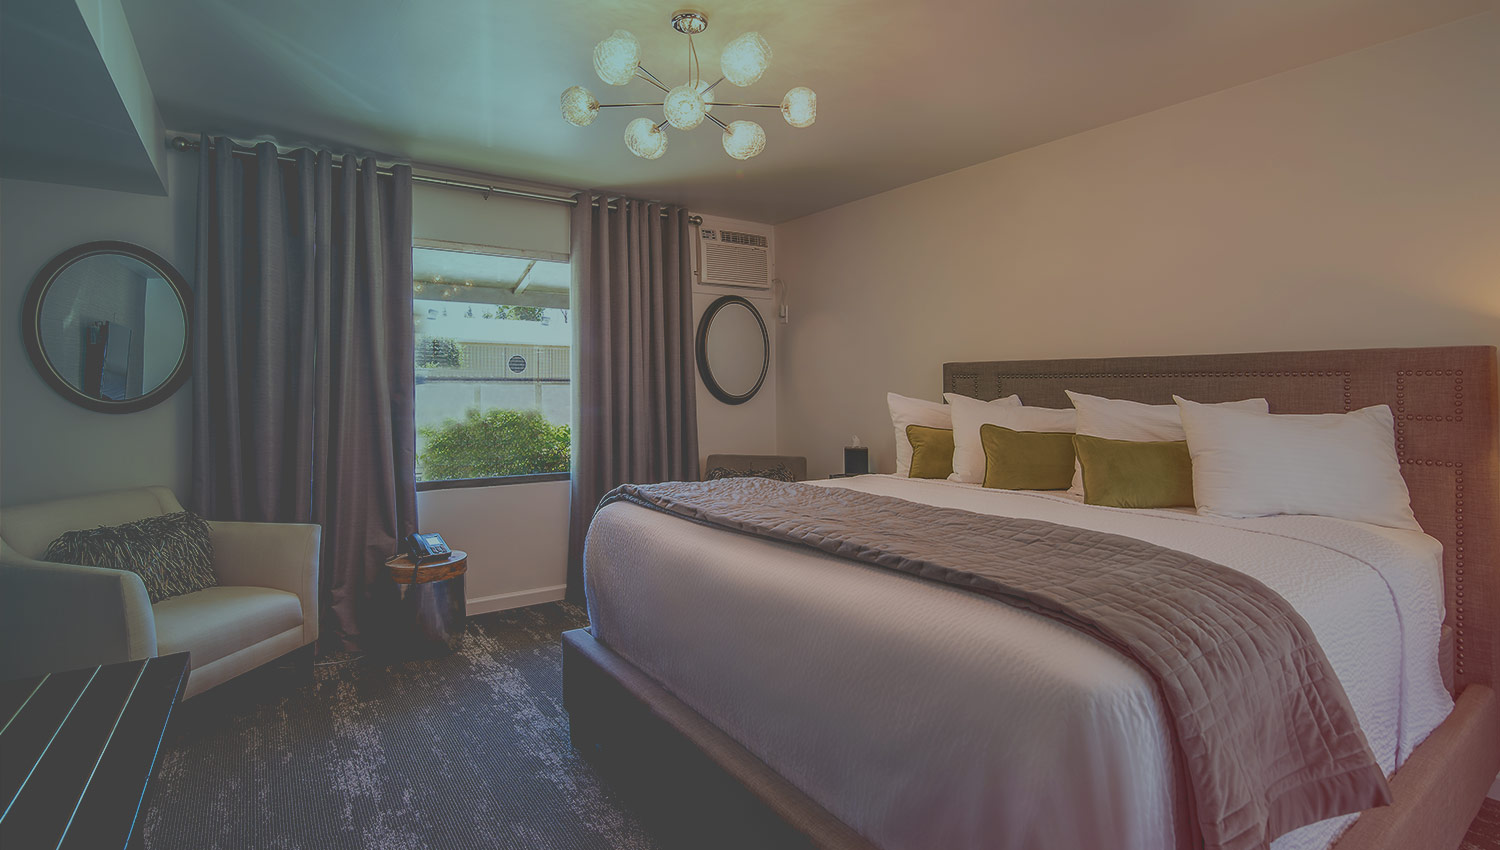 Relax in luxurious guest rooms at our eco-friendly boutique hotel